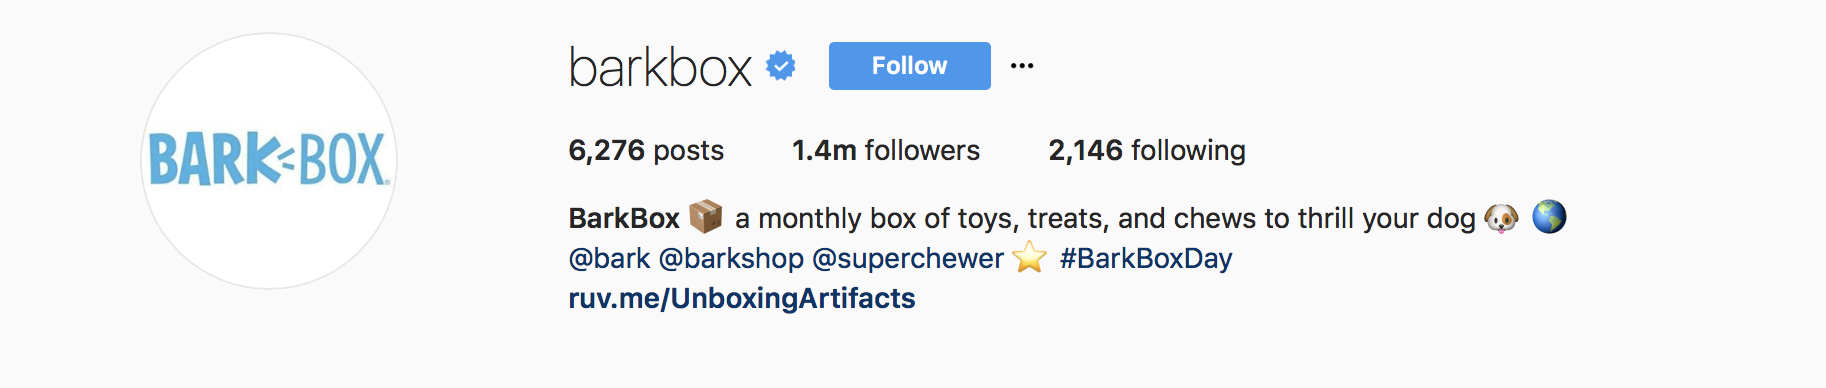 instagram business bio